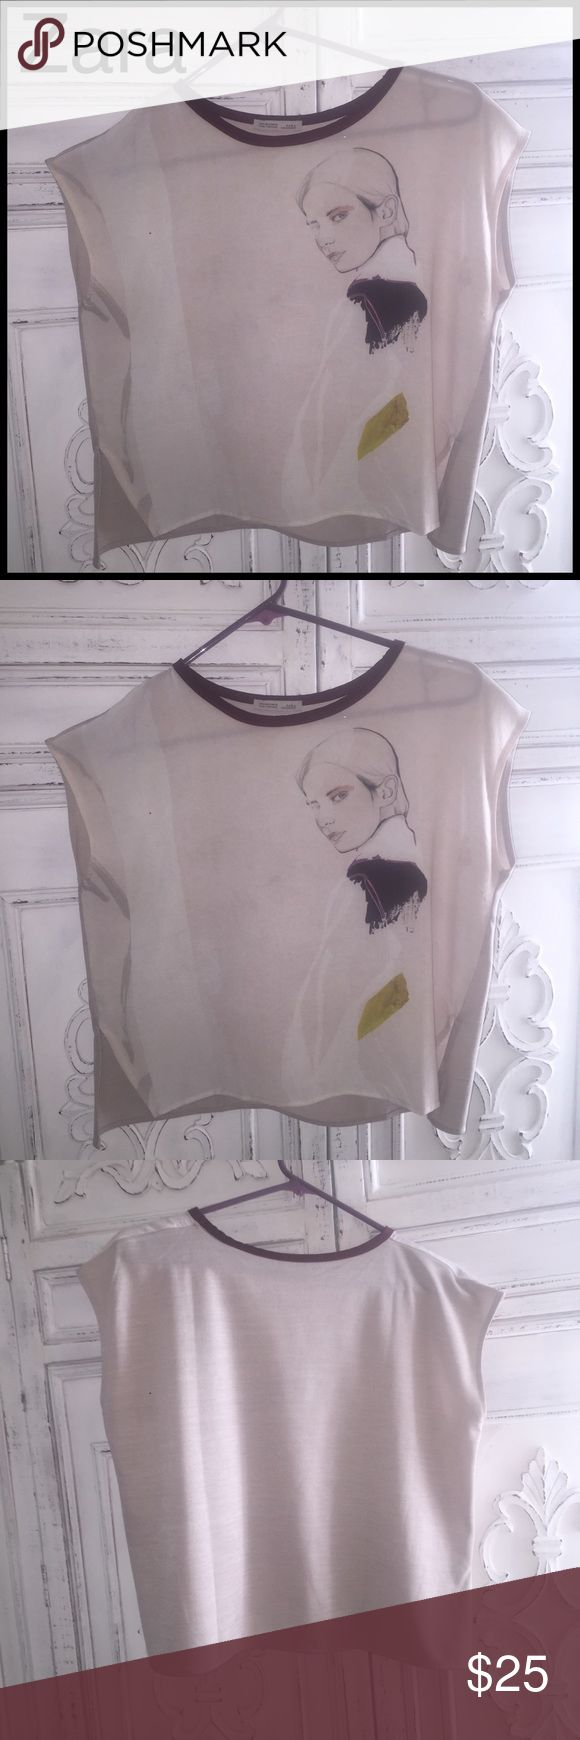 Zara Pretty Girl Shirt Zara W/B collection sleeveless lightweight top. Slightly sheer. Purple collar with slits on both sides. Only worn once cut tag off. Like new!! Color is off white, almost grey. Made in Morocco Zara Tops Blouses